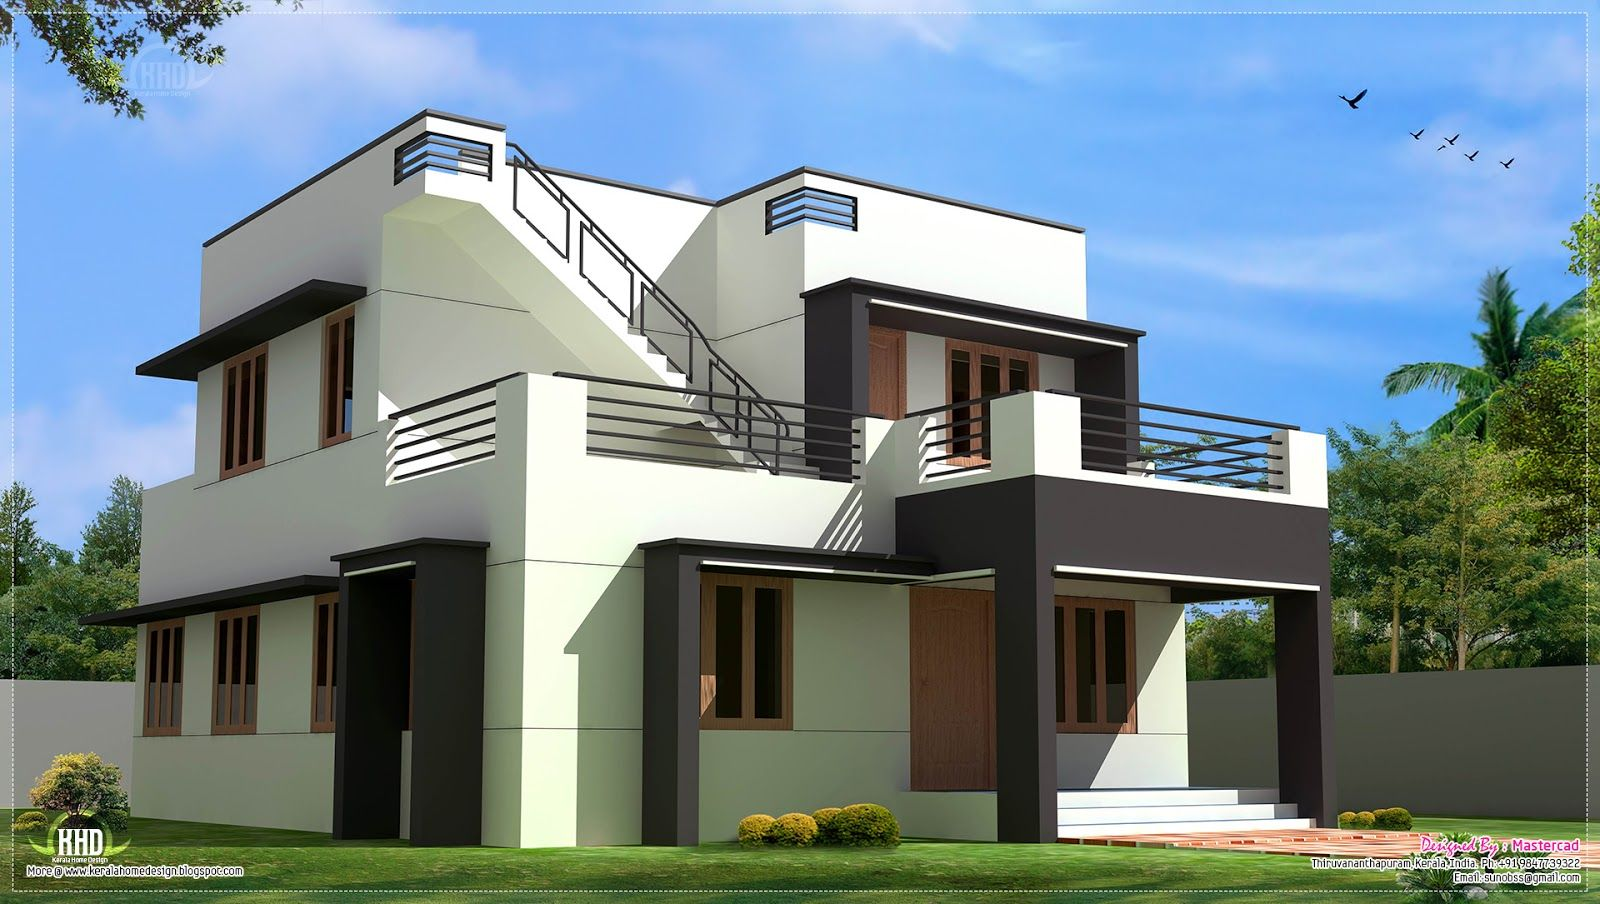 Charmant Modern Home Design Pertaining To 28 Awesome Modern House Designs